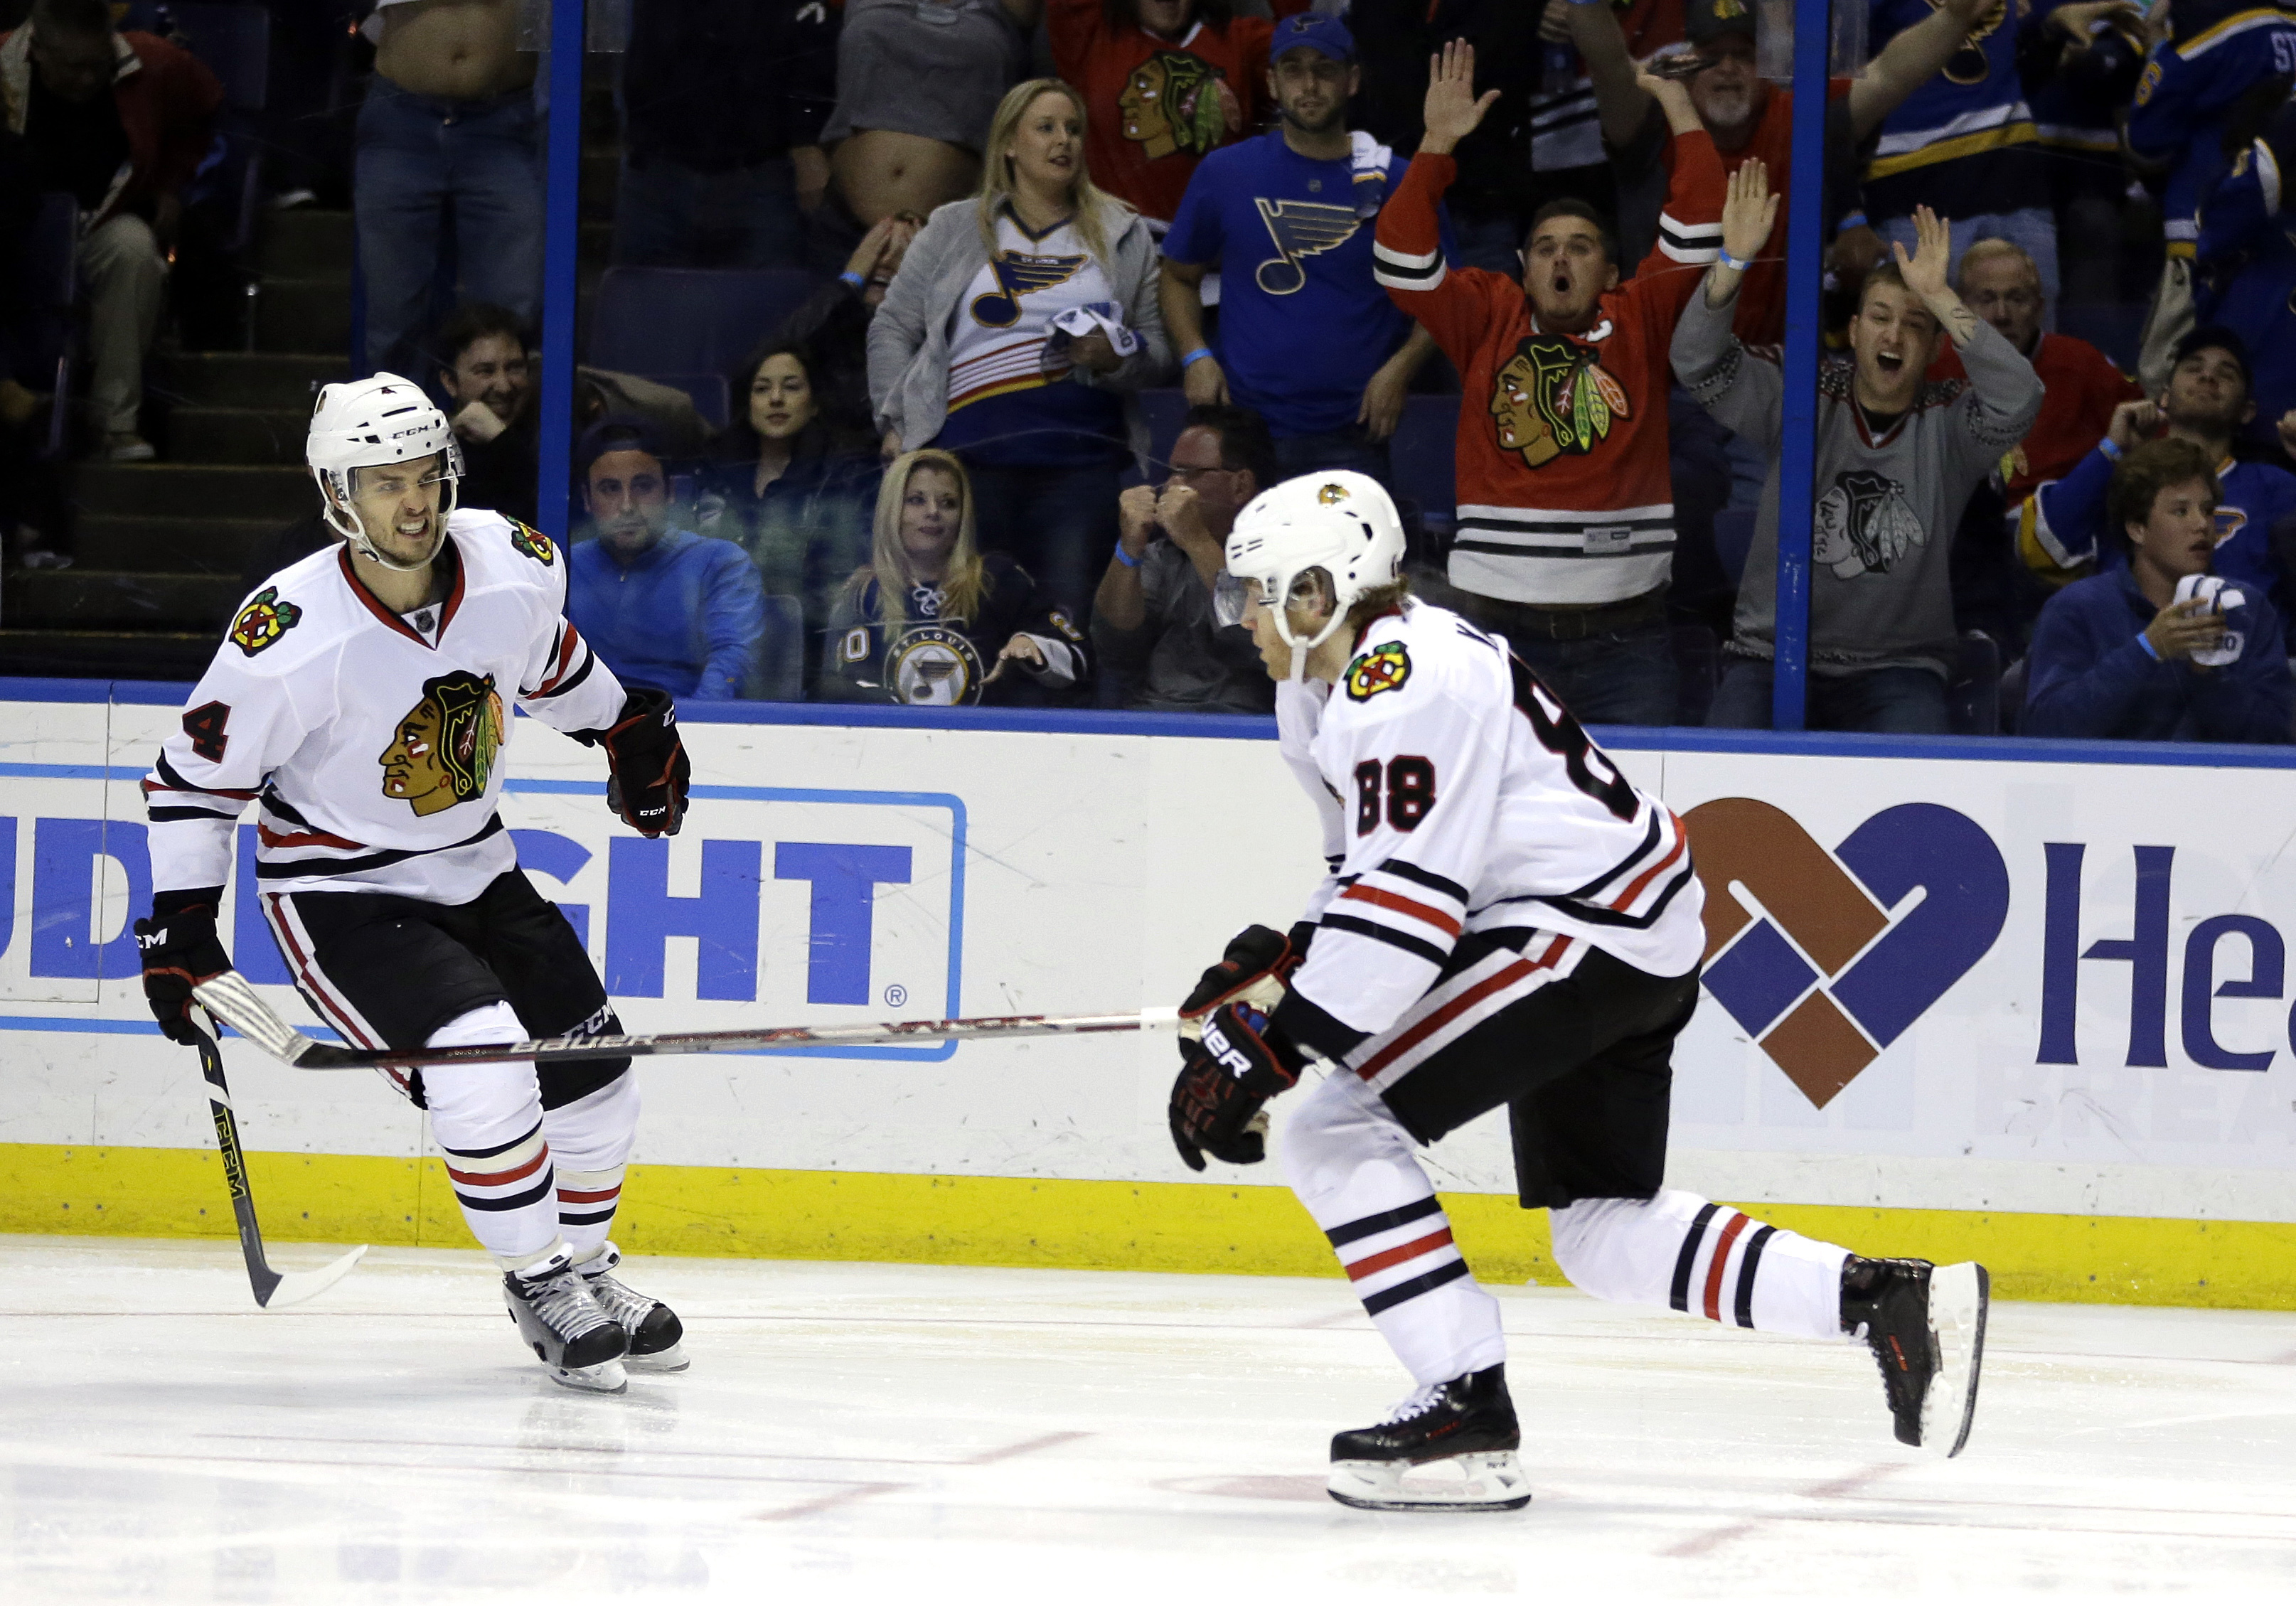 Chicago Blackhawks' Patrick Kane, right, celebrates as he skates by teammate Niklas Hjalmarsson, of Sweden, after scoring during the second overtime in Game 5 of an NHL hockey first-round Stanley Cup playoff series against the St. Louis Blues early Friday